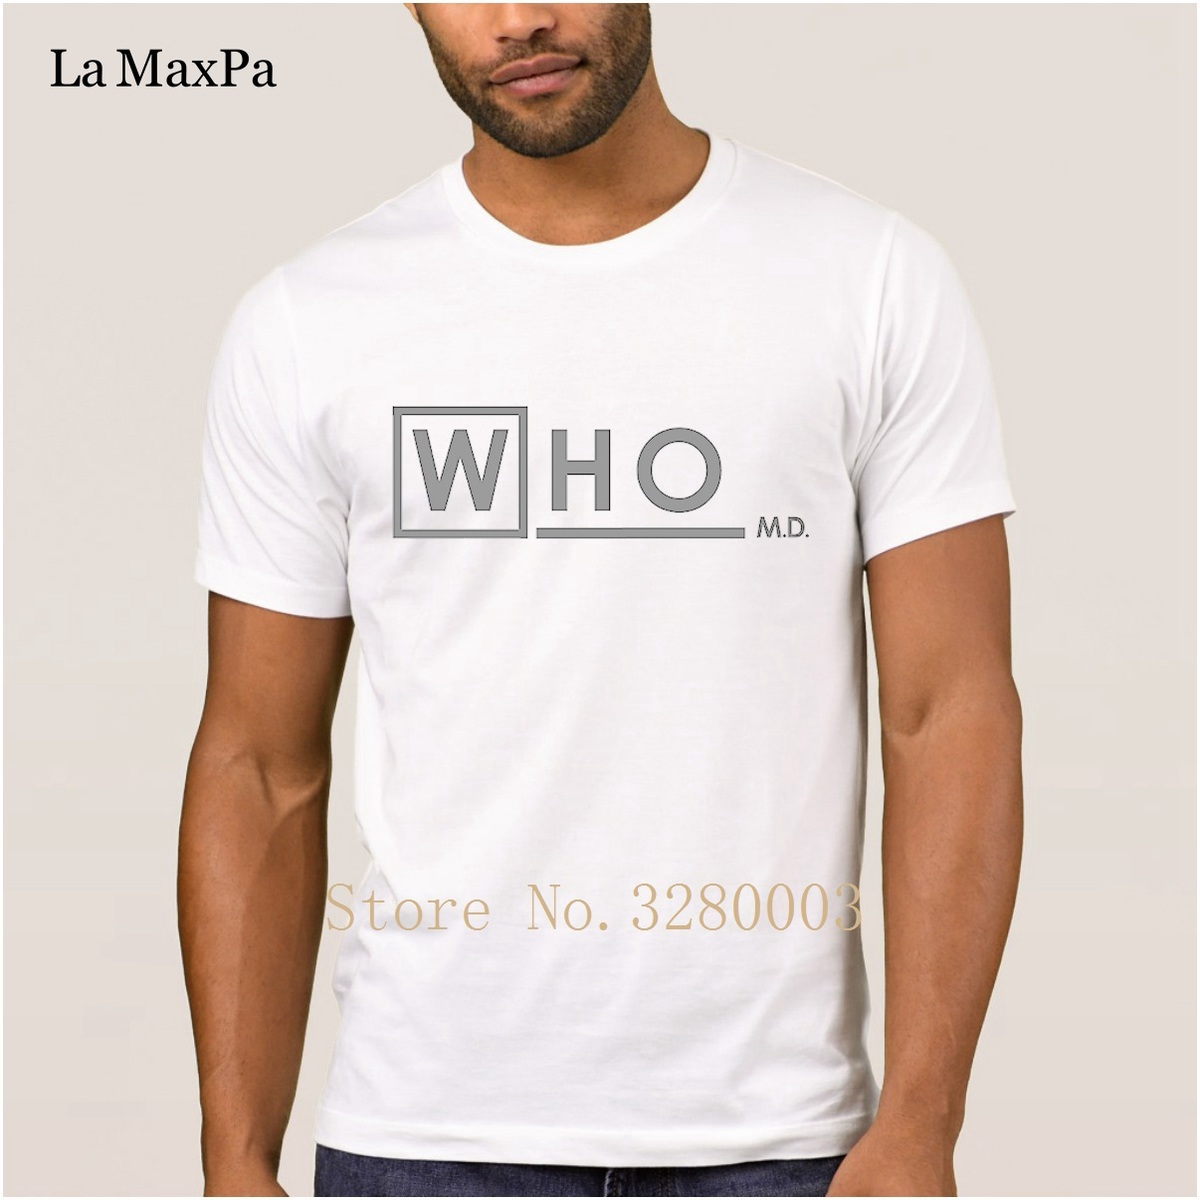 La Maxpa Knitted Comical t shirt for men doctor who md white t-shirt for men 2018 Kawaii tshirt for men O-Neck Graphic